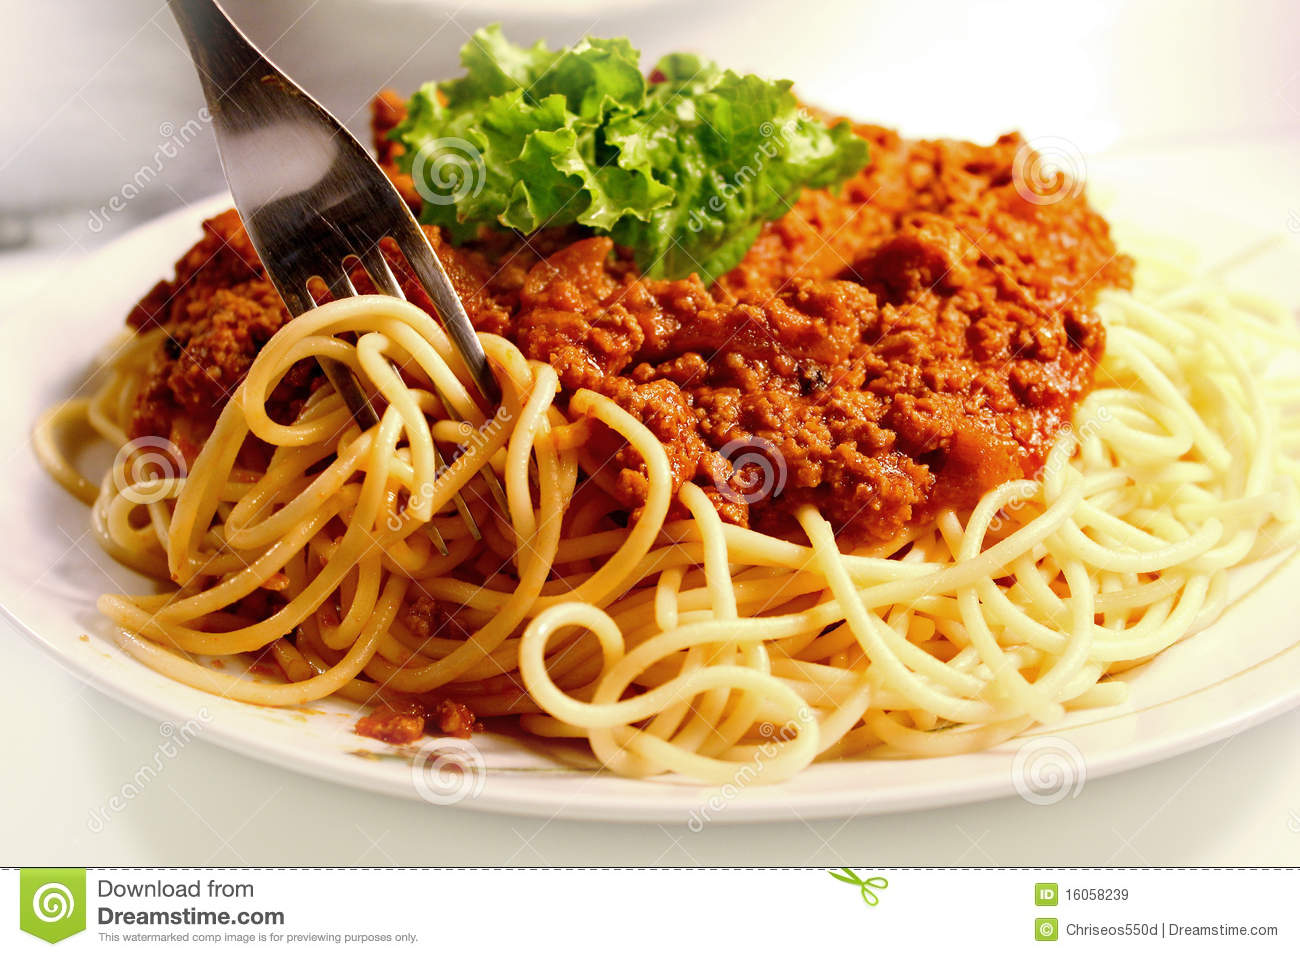 Spaghetti And Meat Sauce Royalty Free Stock Images - Image: 16058239